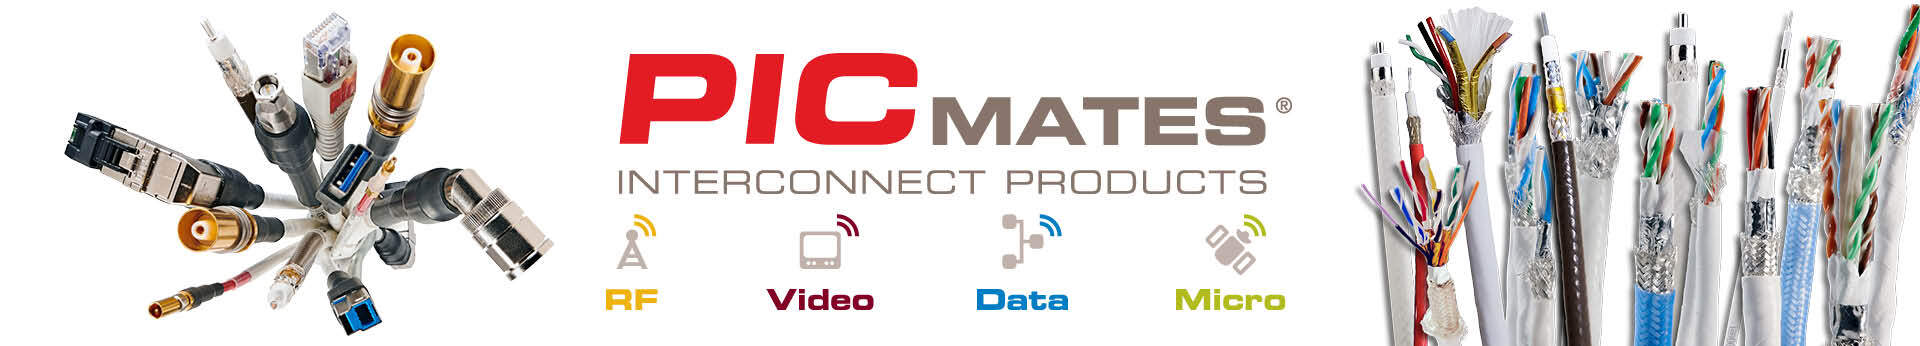 PIC Mates Interconnect Products